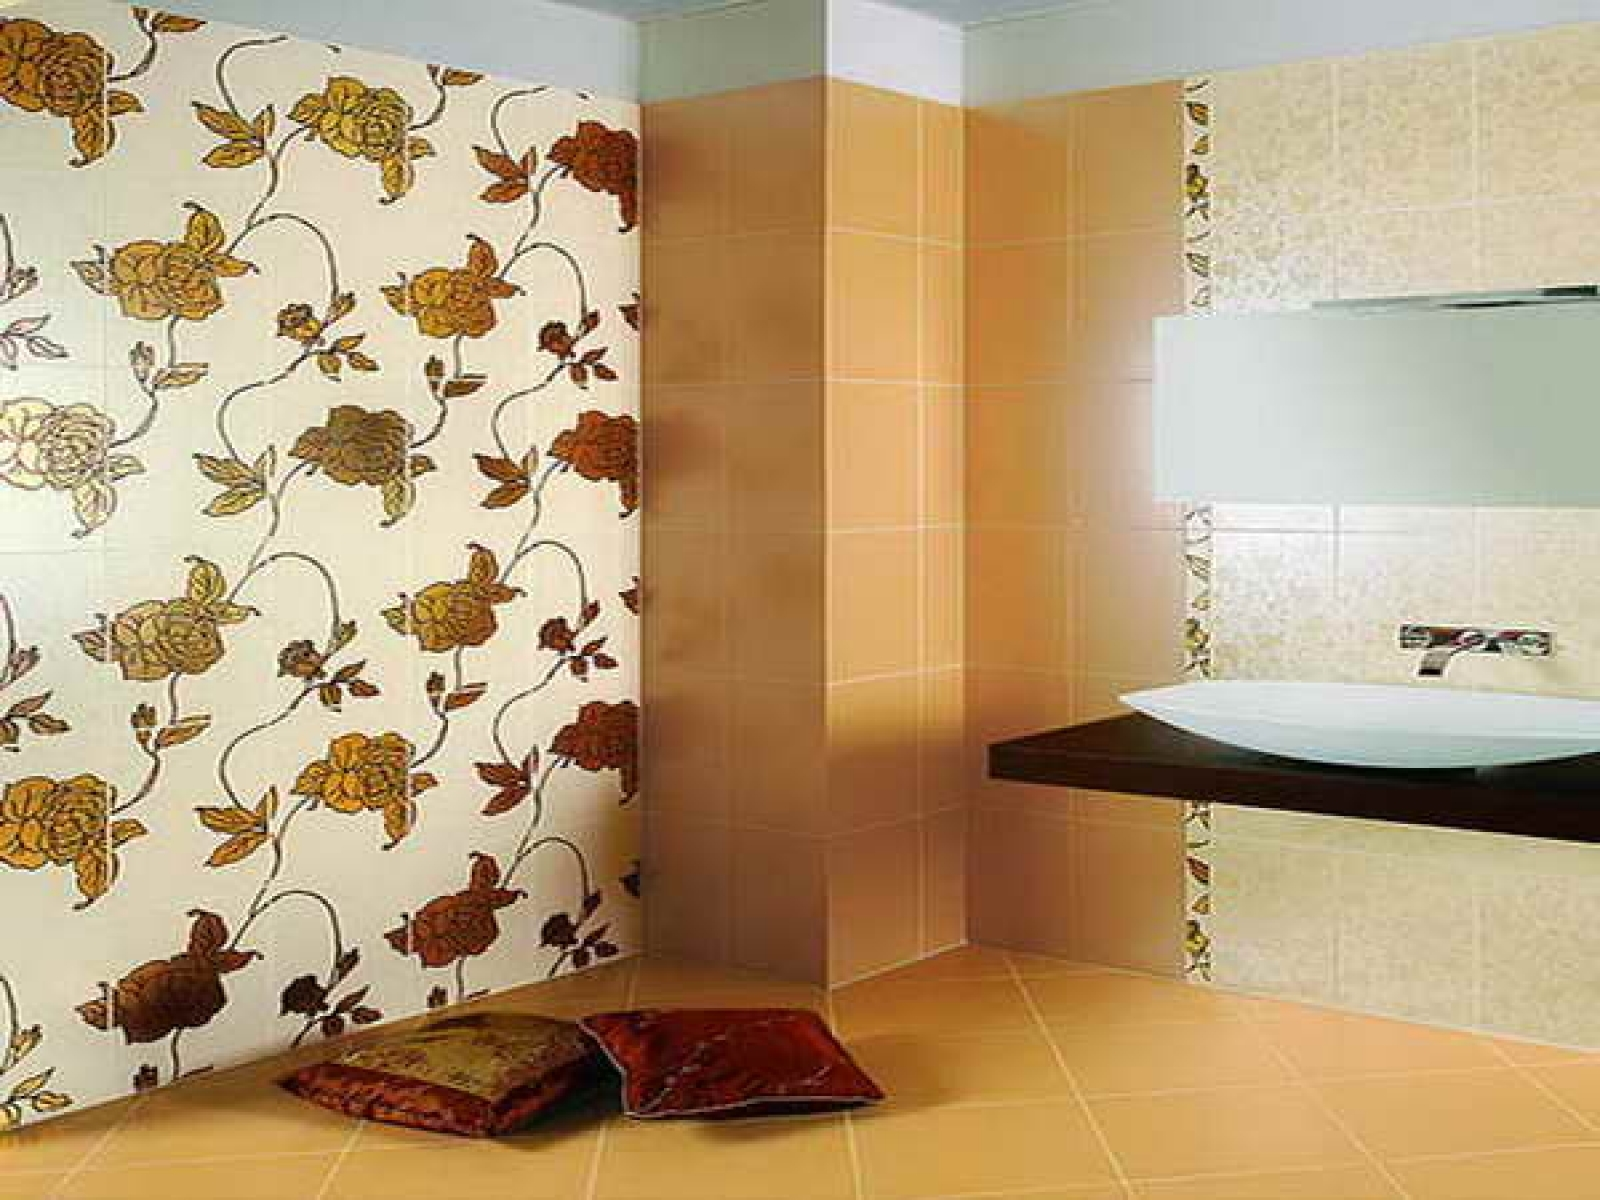 Permalink to Wall To Wall Bathroom Carpet 5 X 5